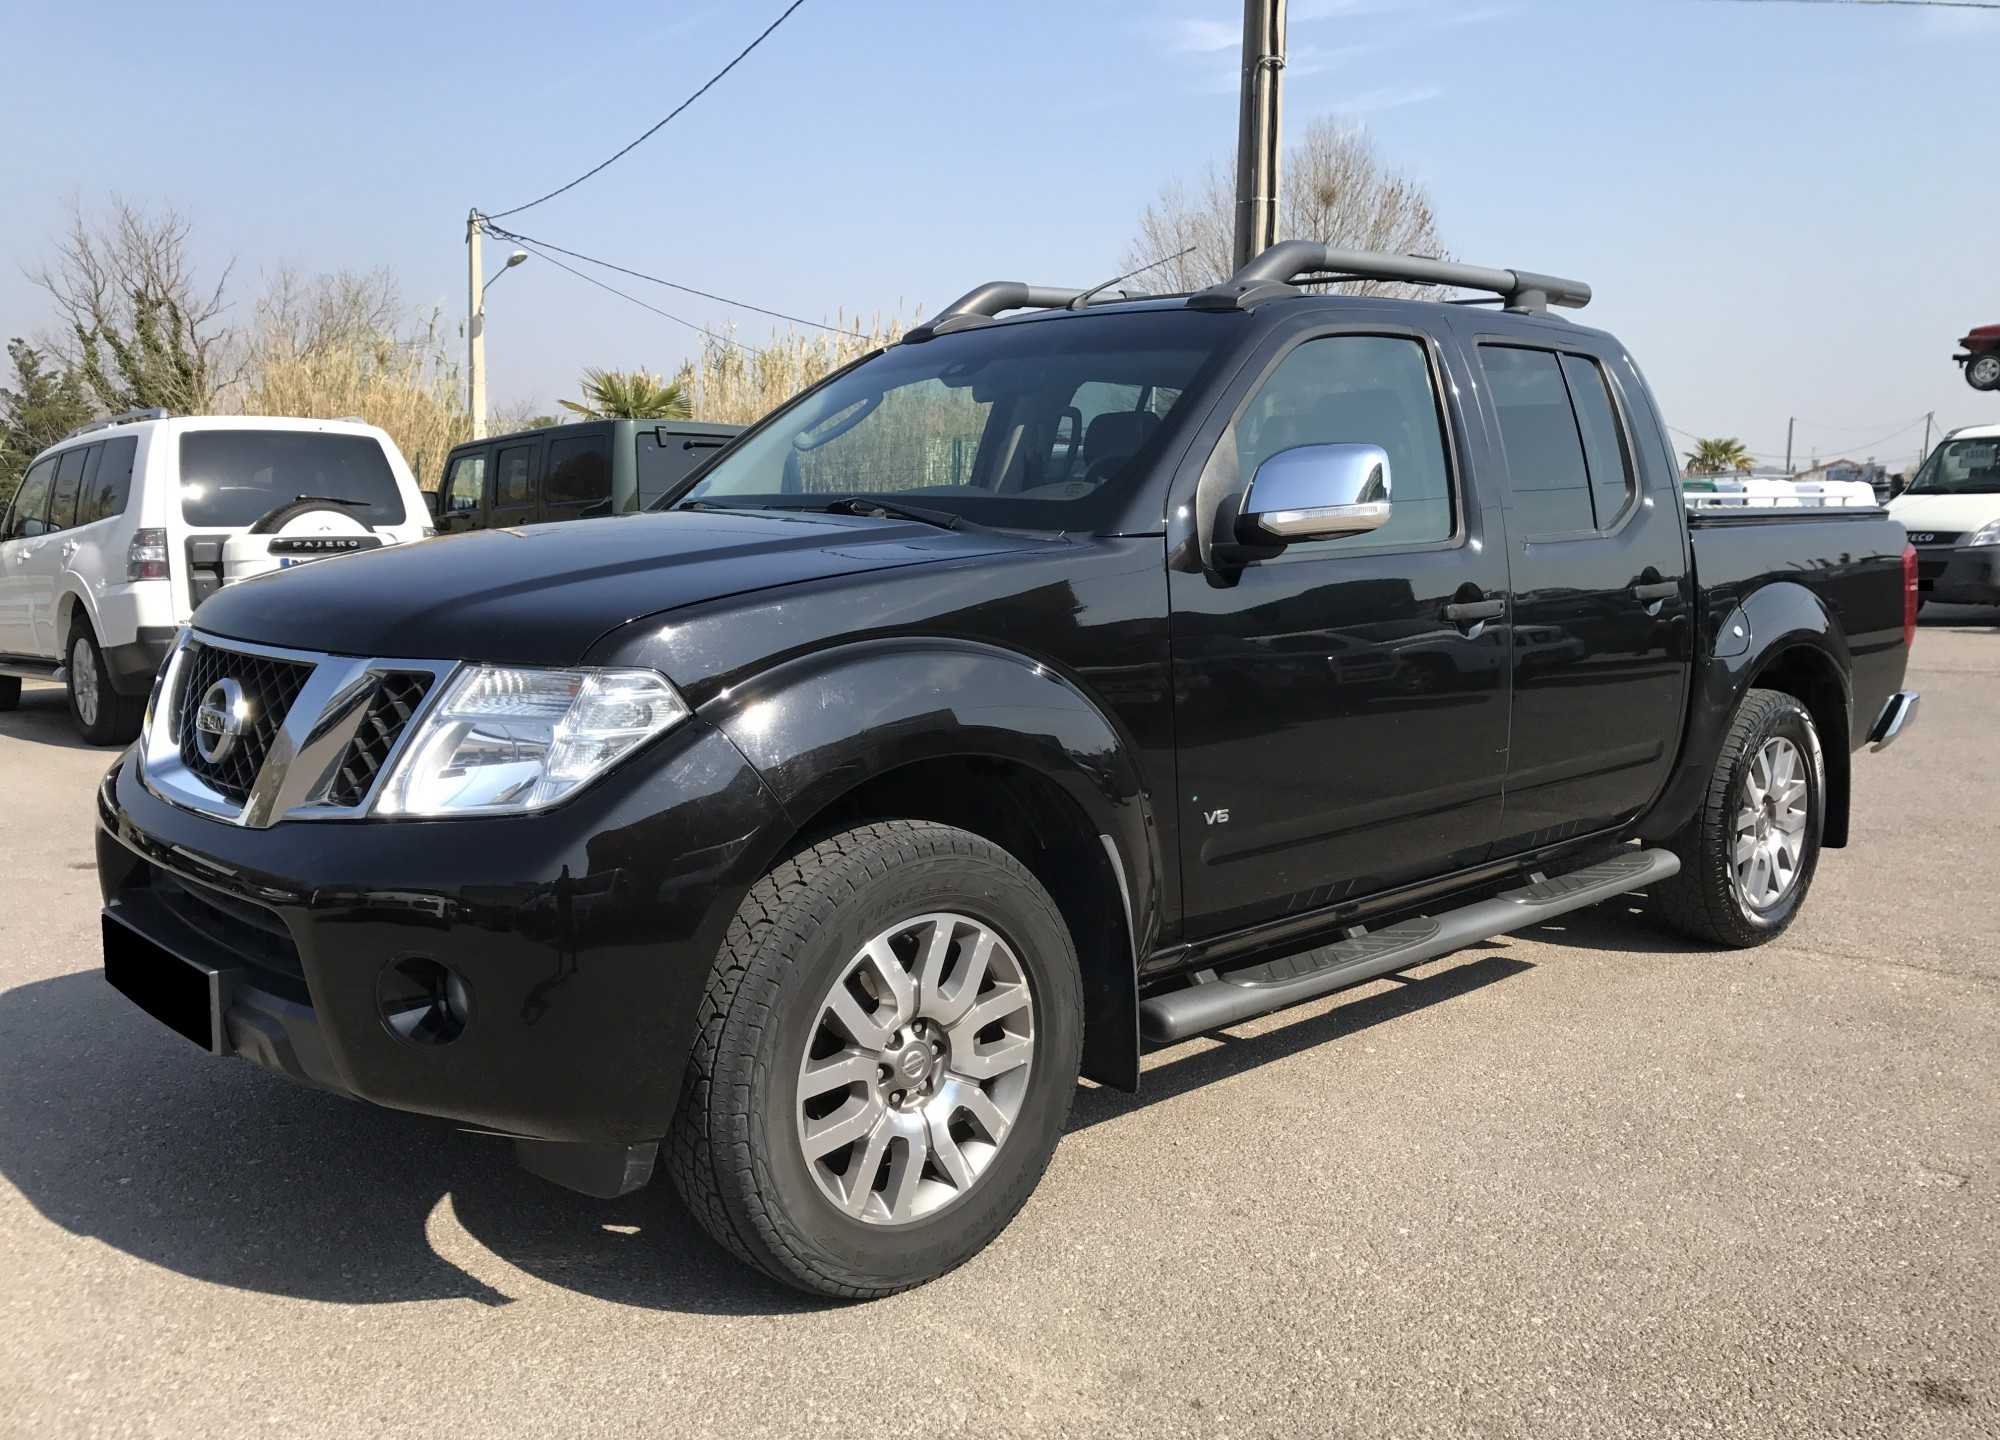 nissan navara 3 0 v6 dci 230 ch le auto bose de 2012 voir dans les bouches du rh ne proche des. Black Bedroom Furniture Sets. Home Design Ideas